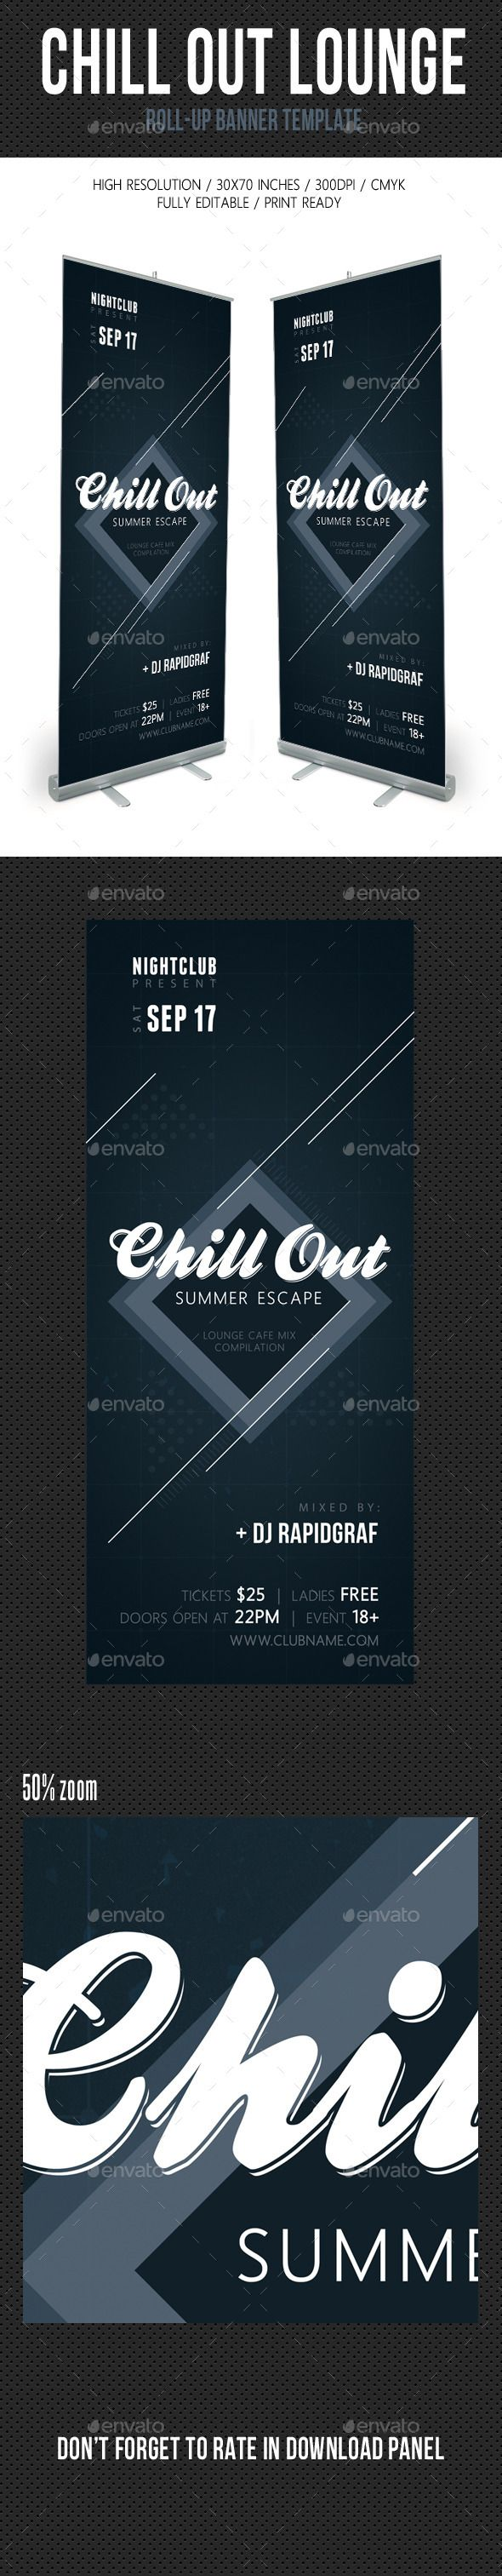 Chill Out Lounge Banner Template